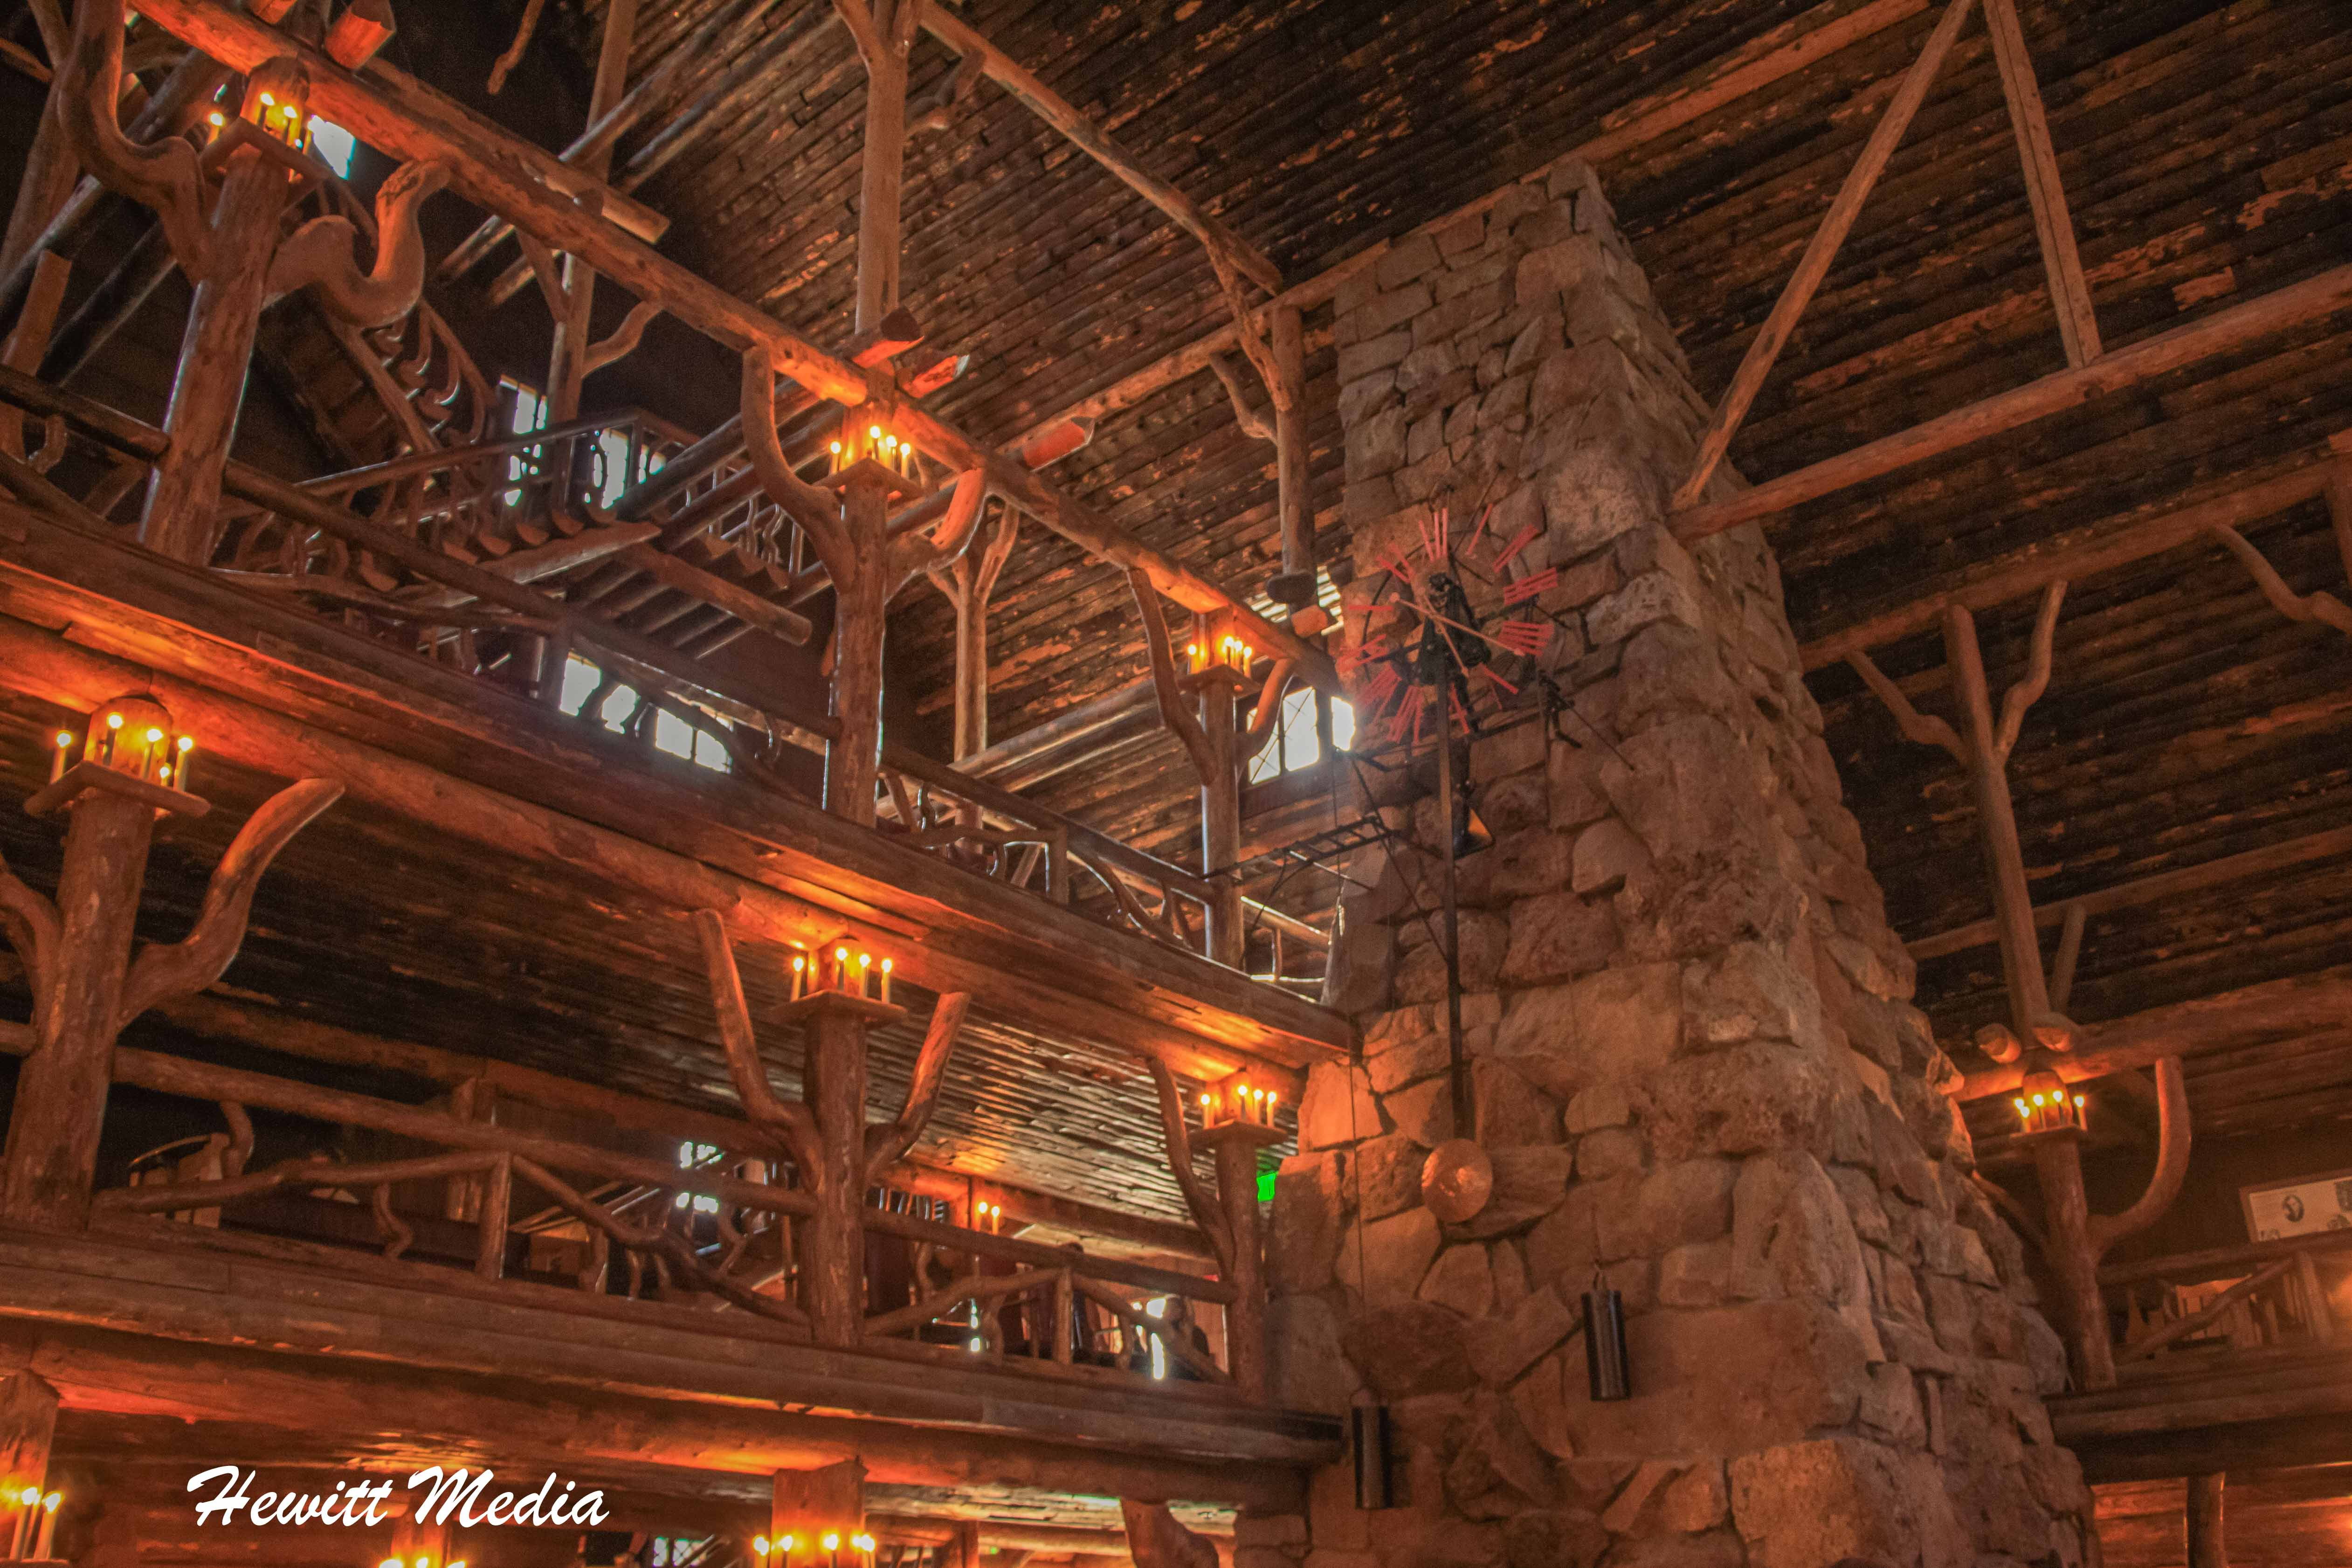 Inside of the Old Faithful Lodge in yellowstone